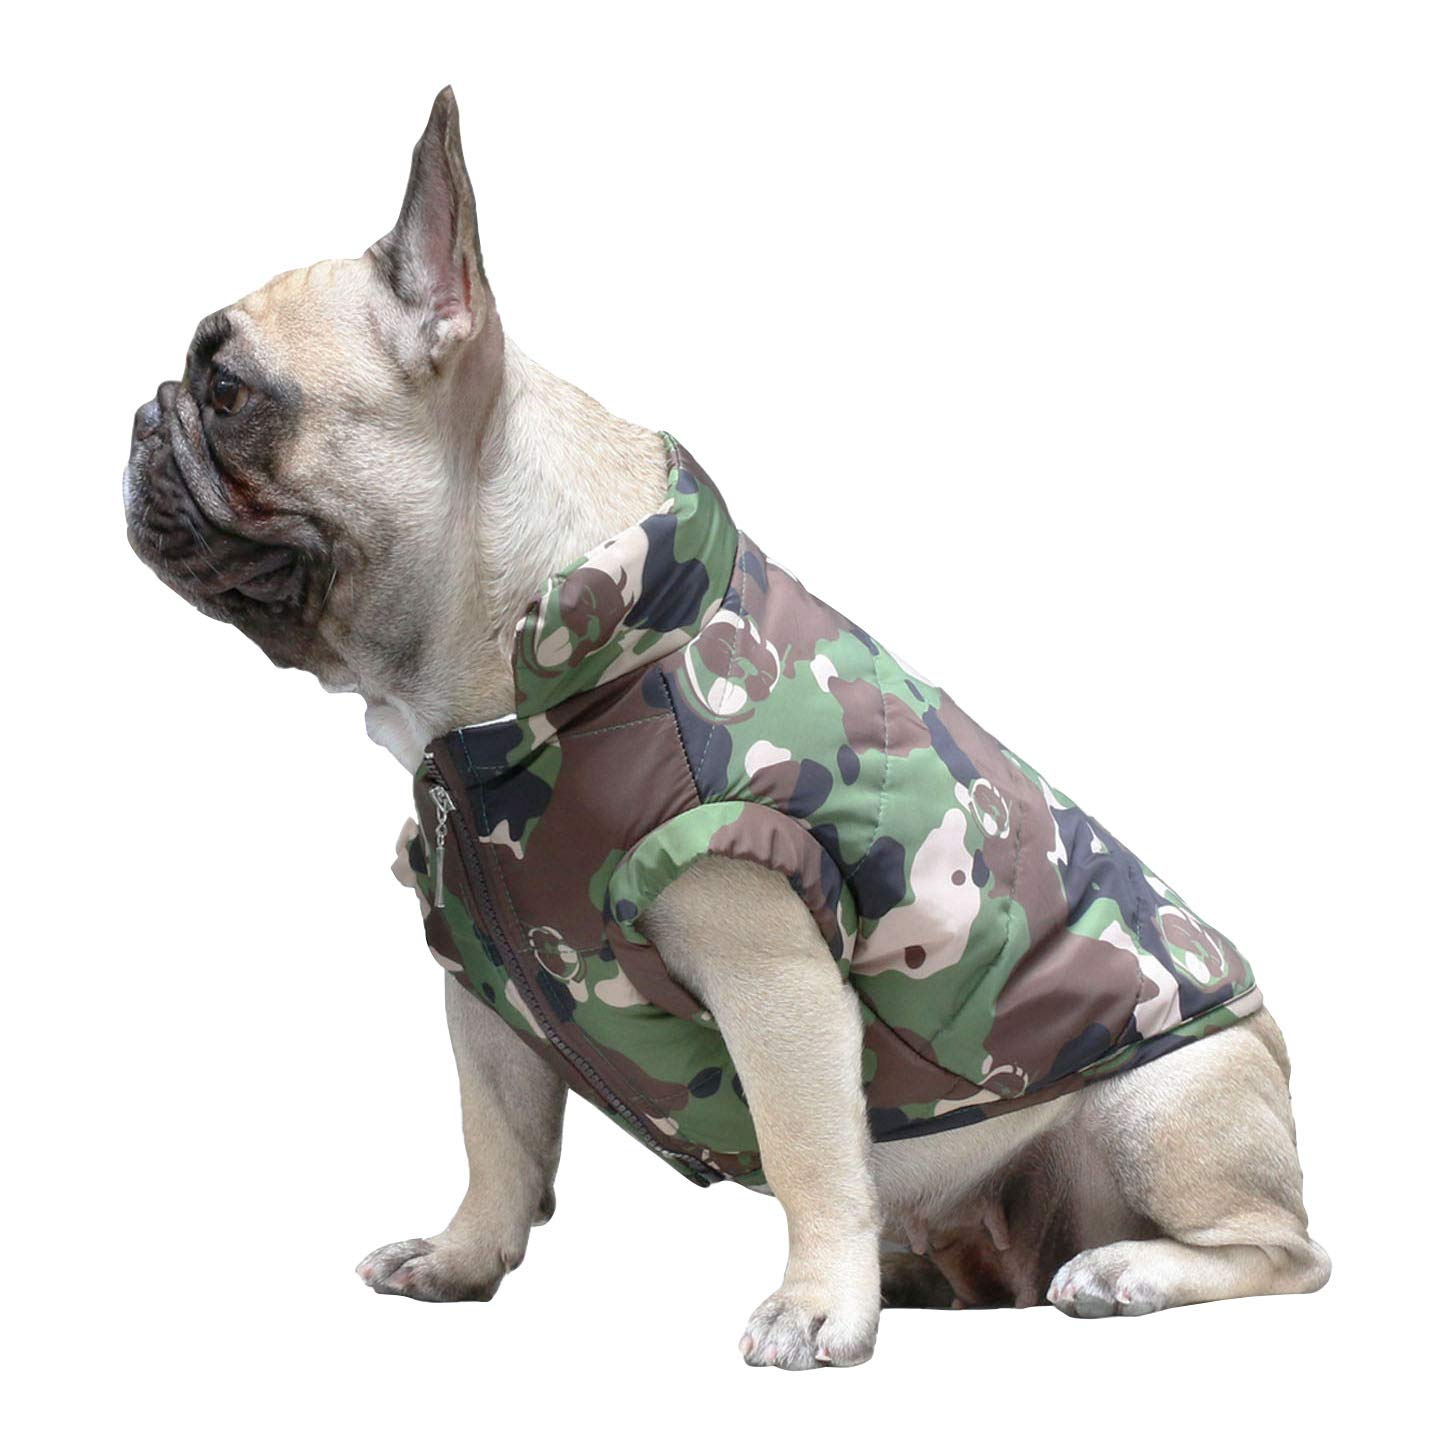 Camo M Camo M iChoue Pet Dog Winter Warm Vest Coat Jacket Clothing French Bulldog Pug Boston Terrier Shiba Inu Soft Cotton Filling Windproof Waterproof Fabric Tank Top Camouflage M